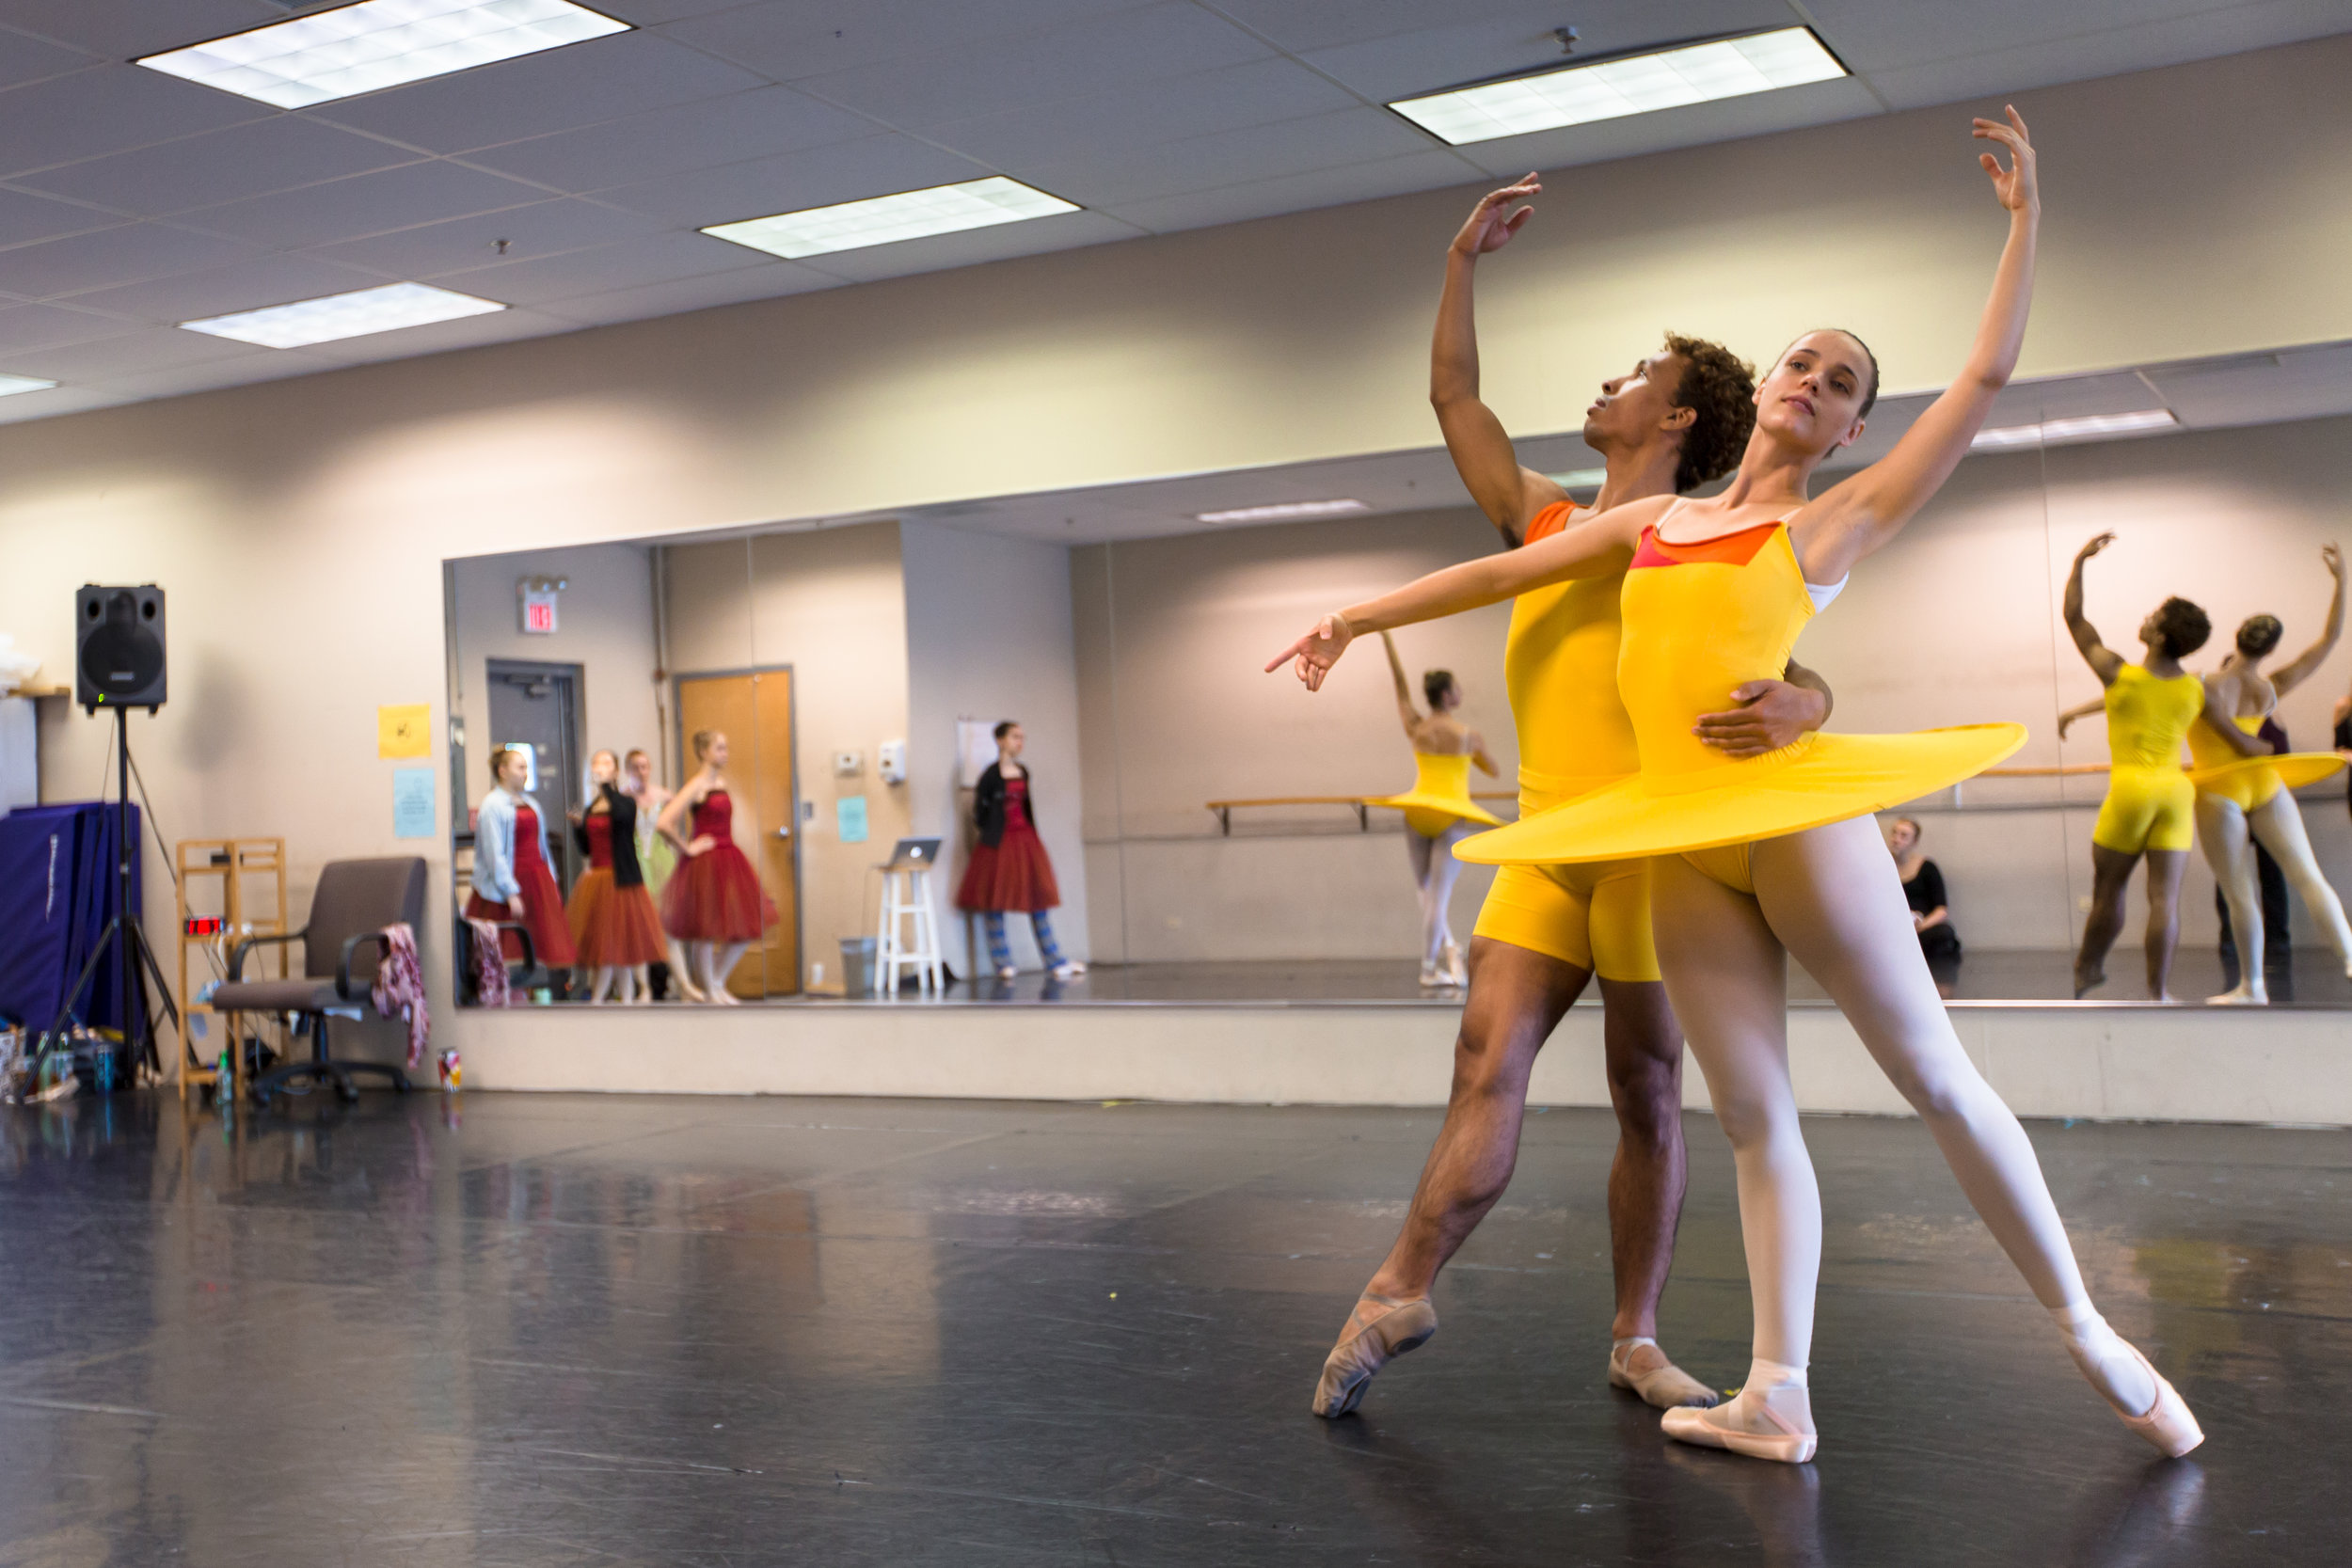 Lead artists brette benedict and antonio rosario rehearsing the summmer  pas de deux  from  four seasons of the soul .